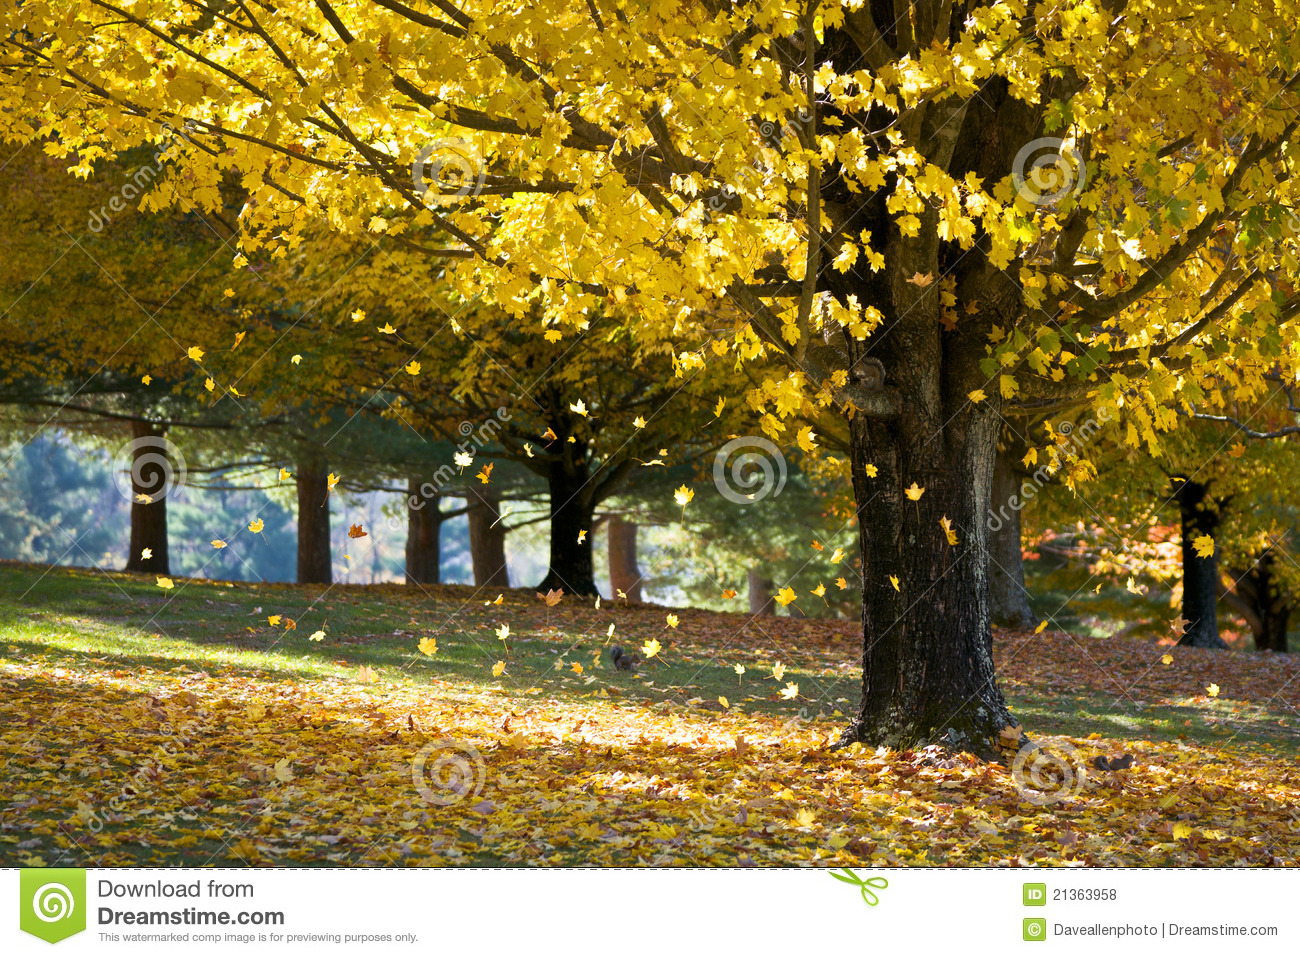 Upstate New York Fall Hd Wallpaper Fall Foliage Yellow Maple Leaves From Autumn Tree Stock